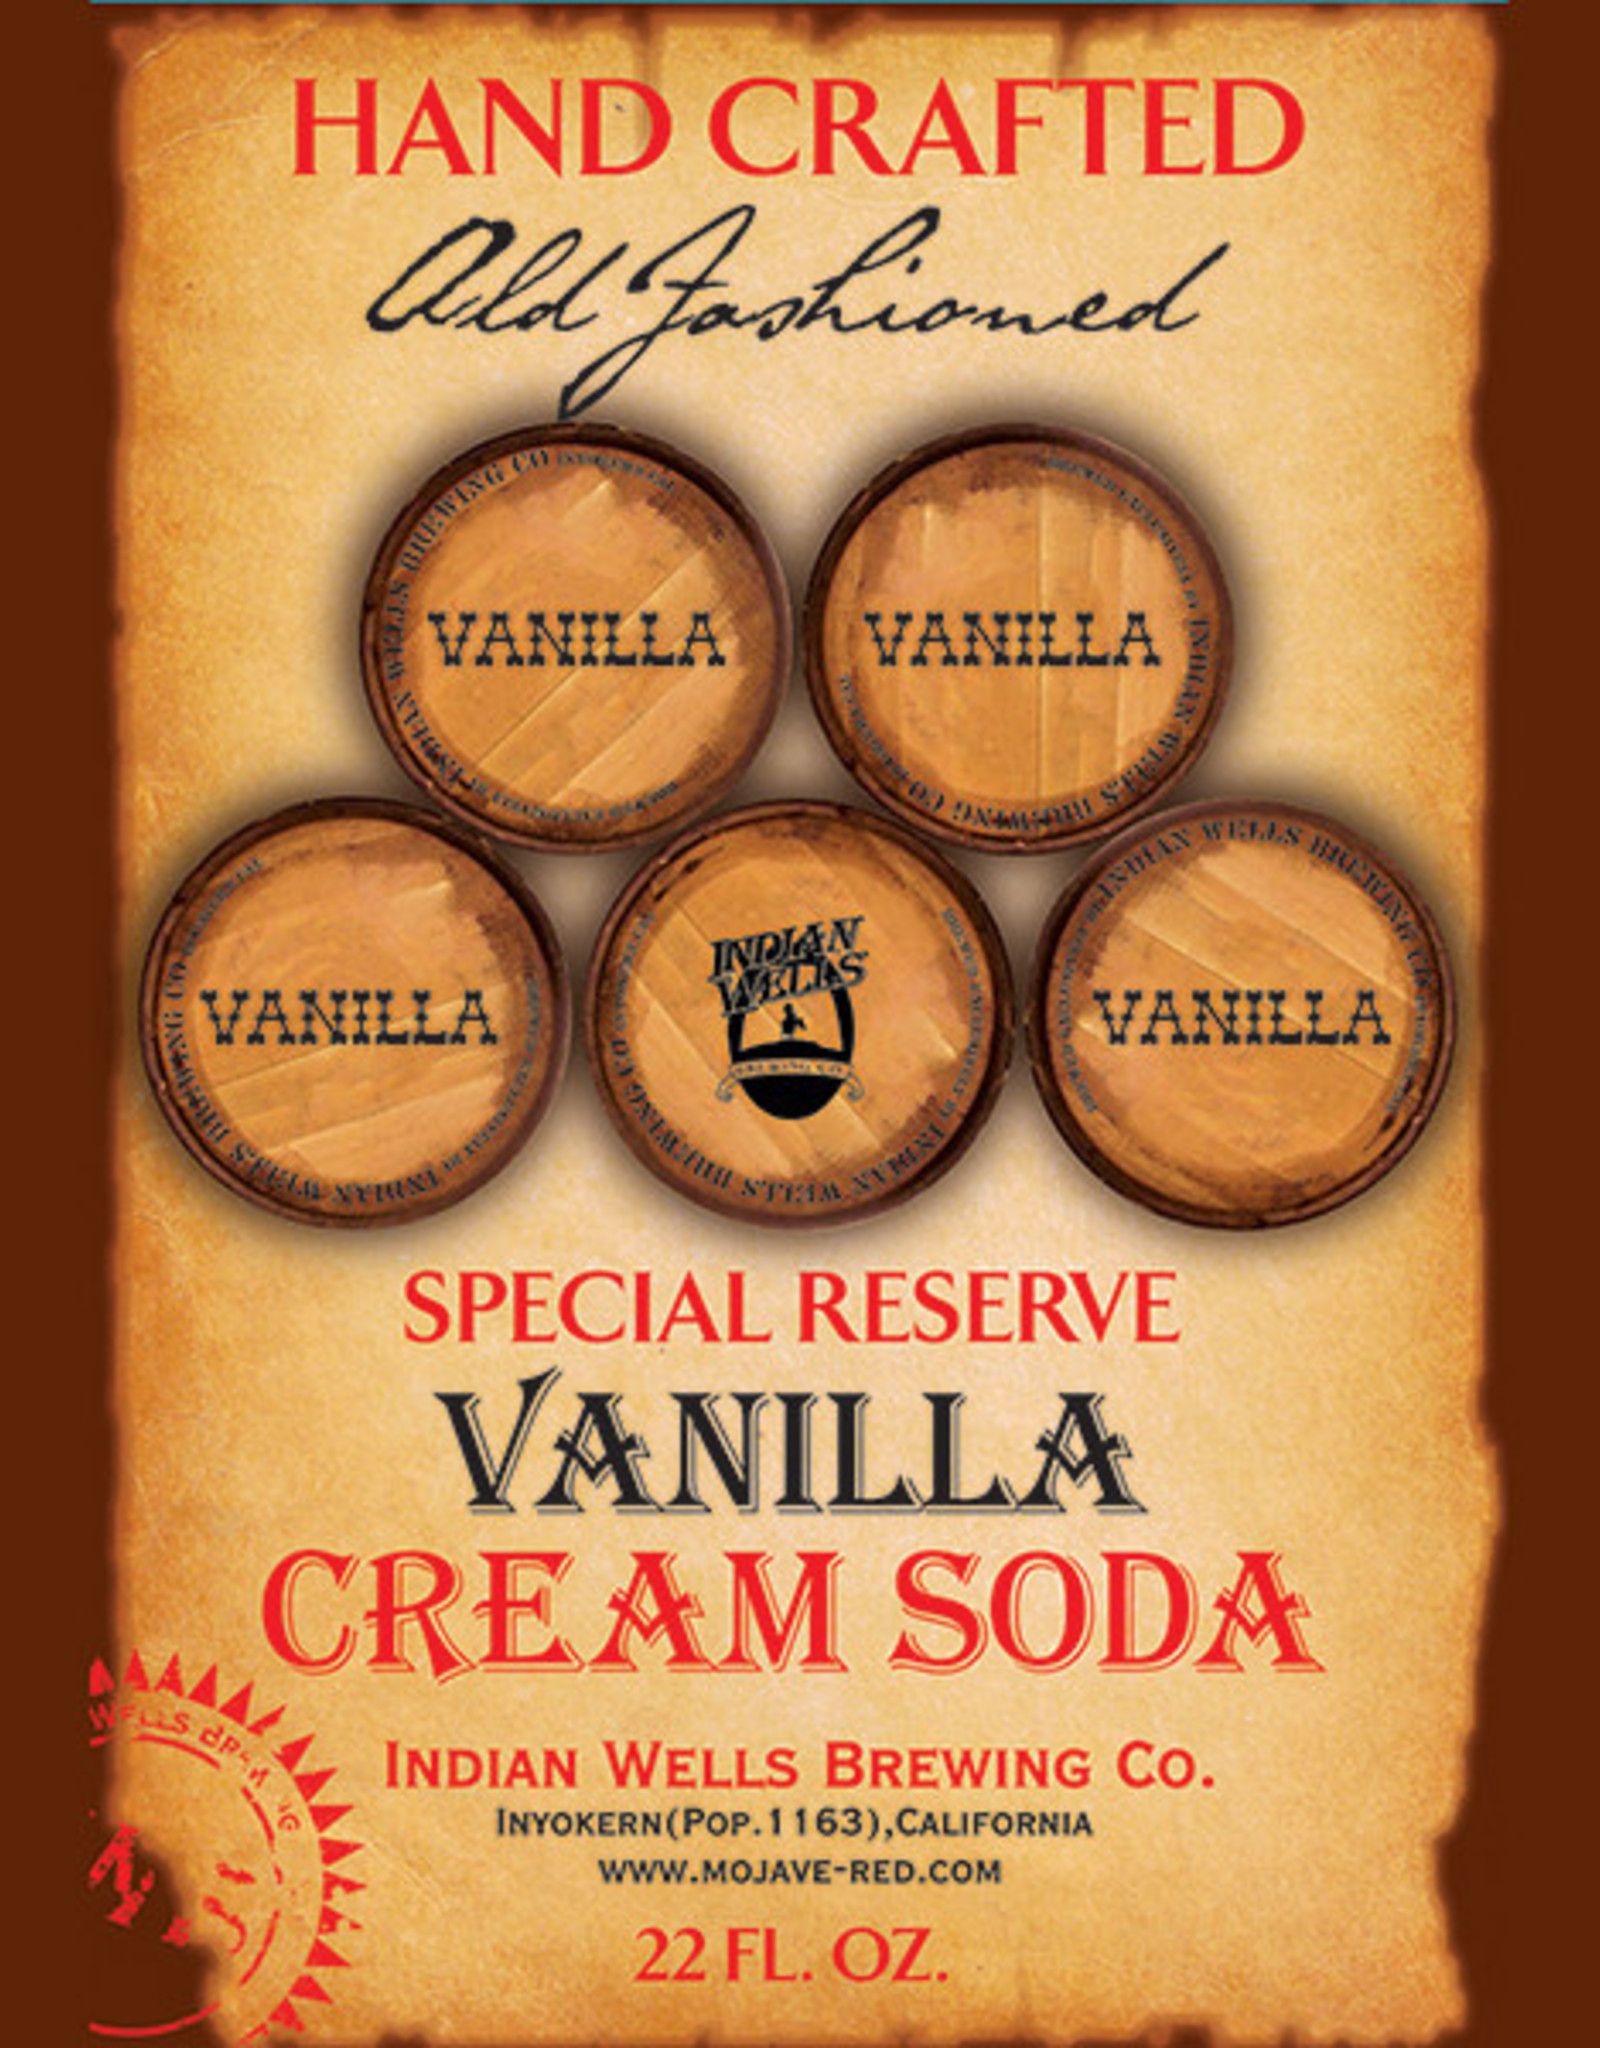 Indian Wells Brewing Company Special Reserve Hand Crafted Vanilla Cream